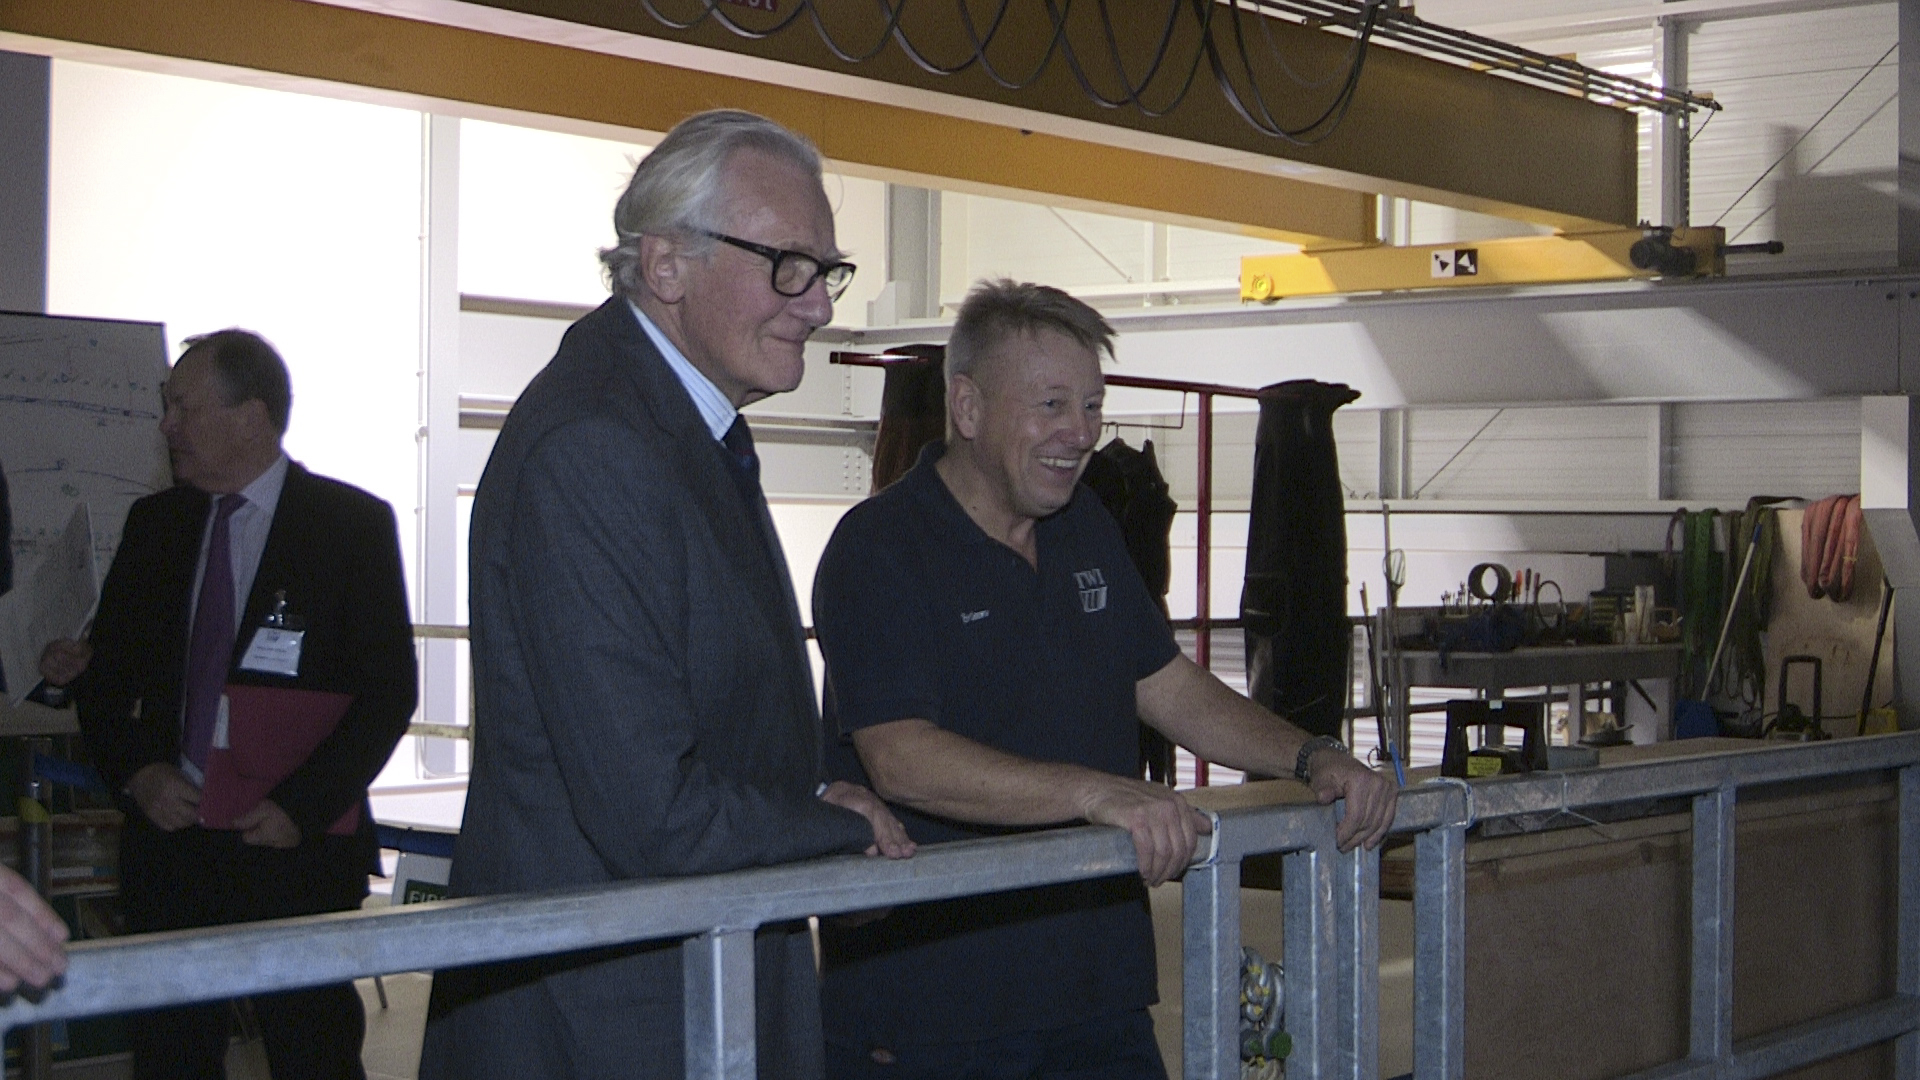 TWI's Brian Mulrooney shows Lord Heseltine the facility's diver training tank